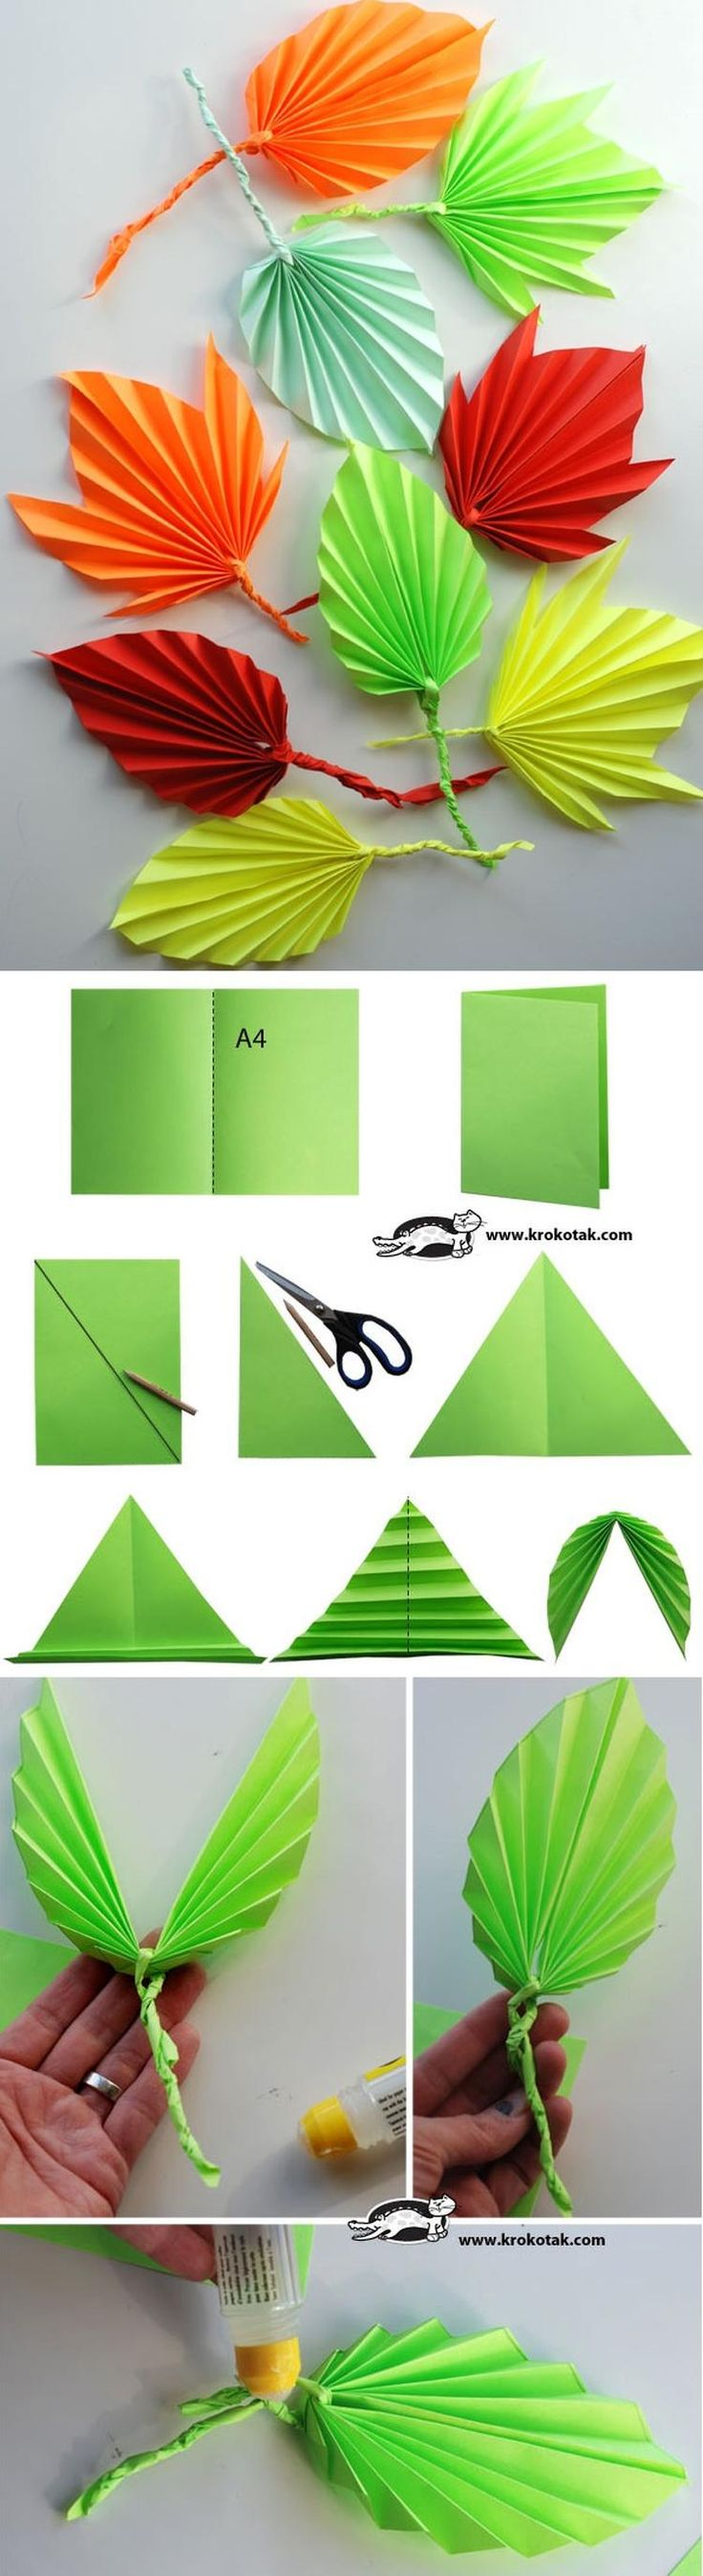 Fold sheets with explanation.